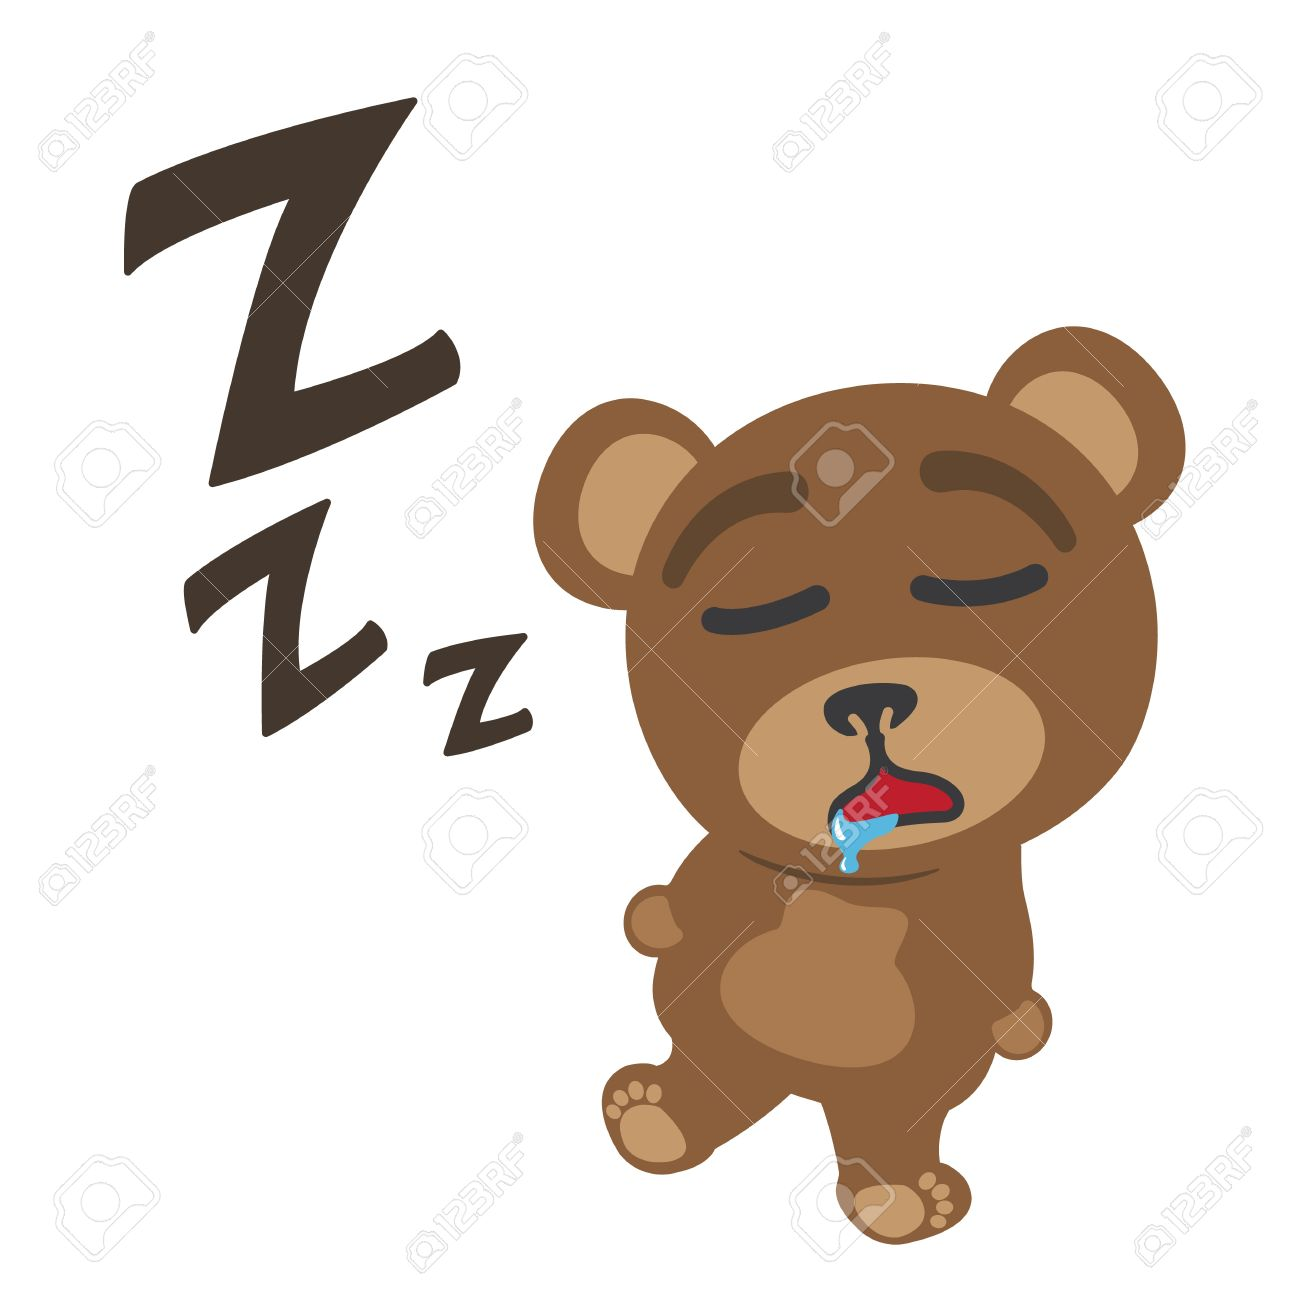 little bear sleeping royalty free cliparts vectors and stock